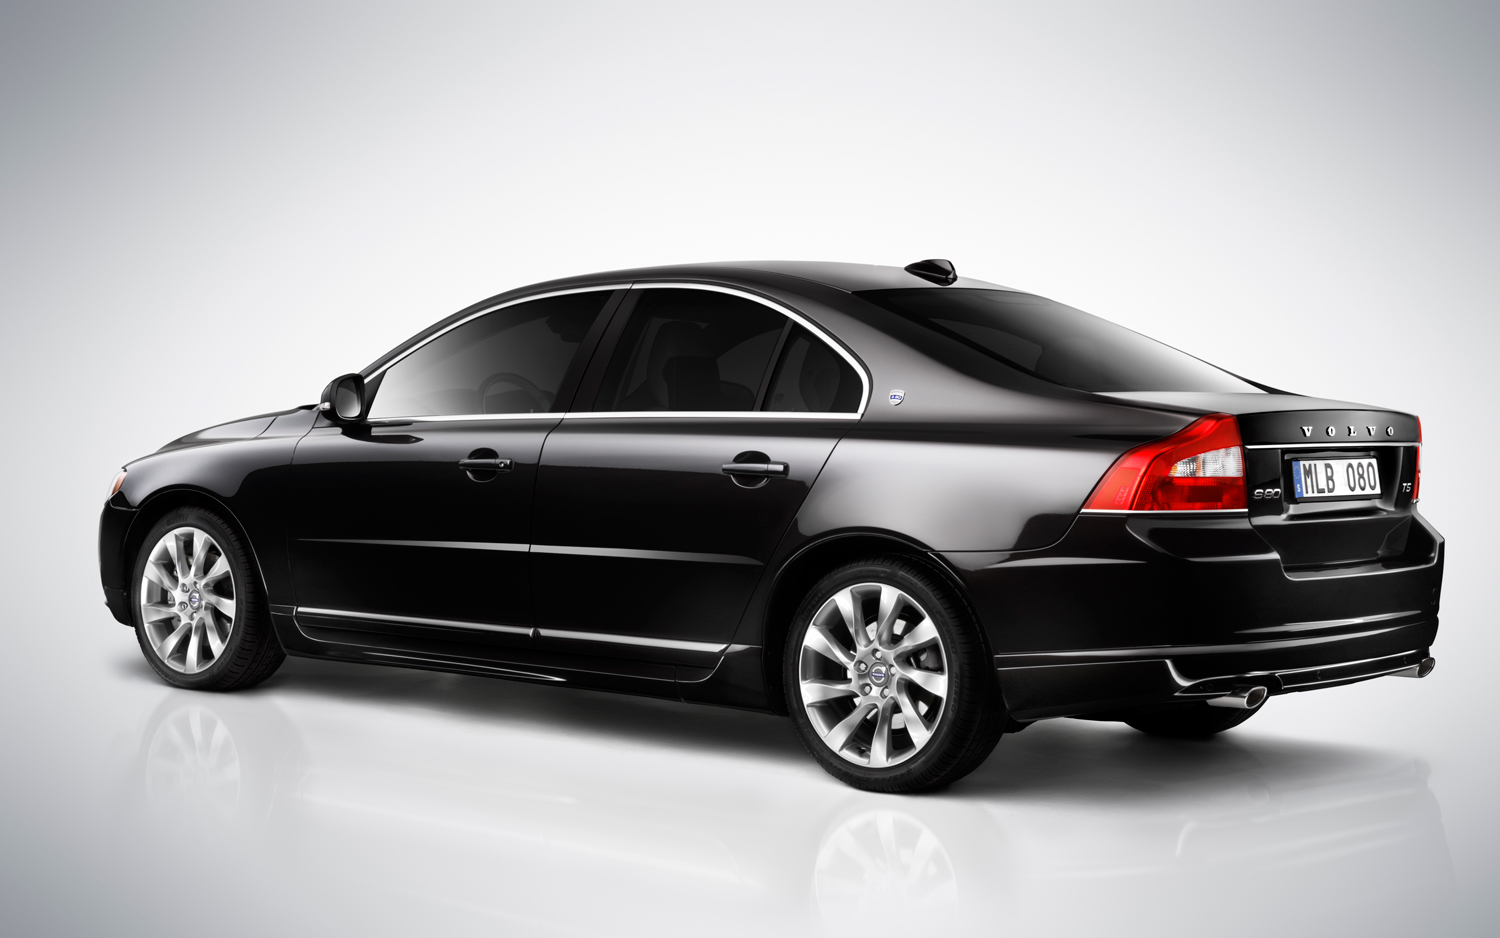 2012 Volvo S80 ii - pictures, information and specs - Auto ...